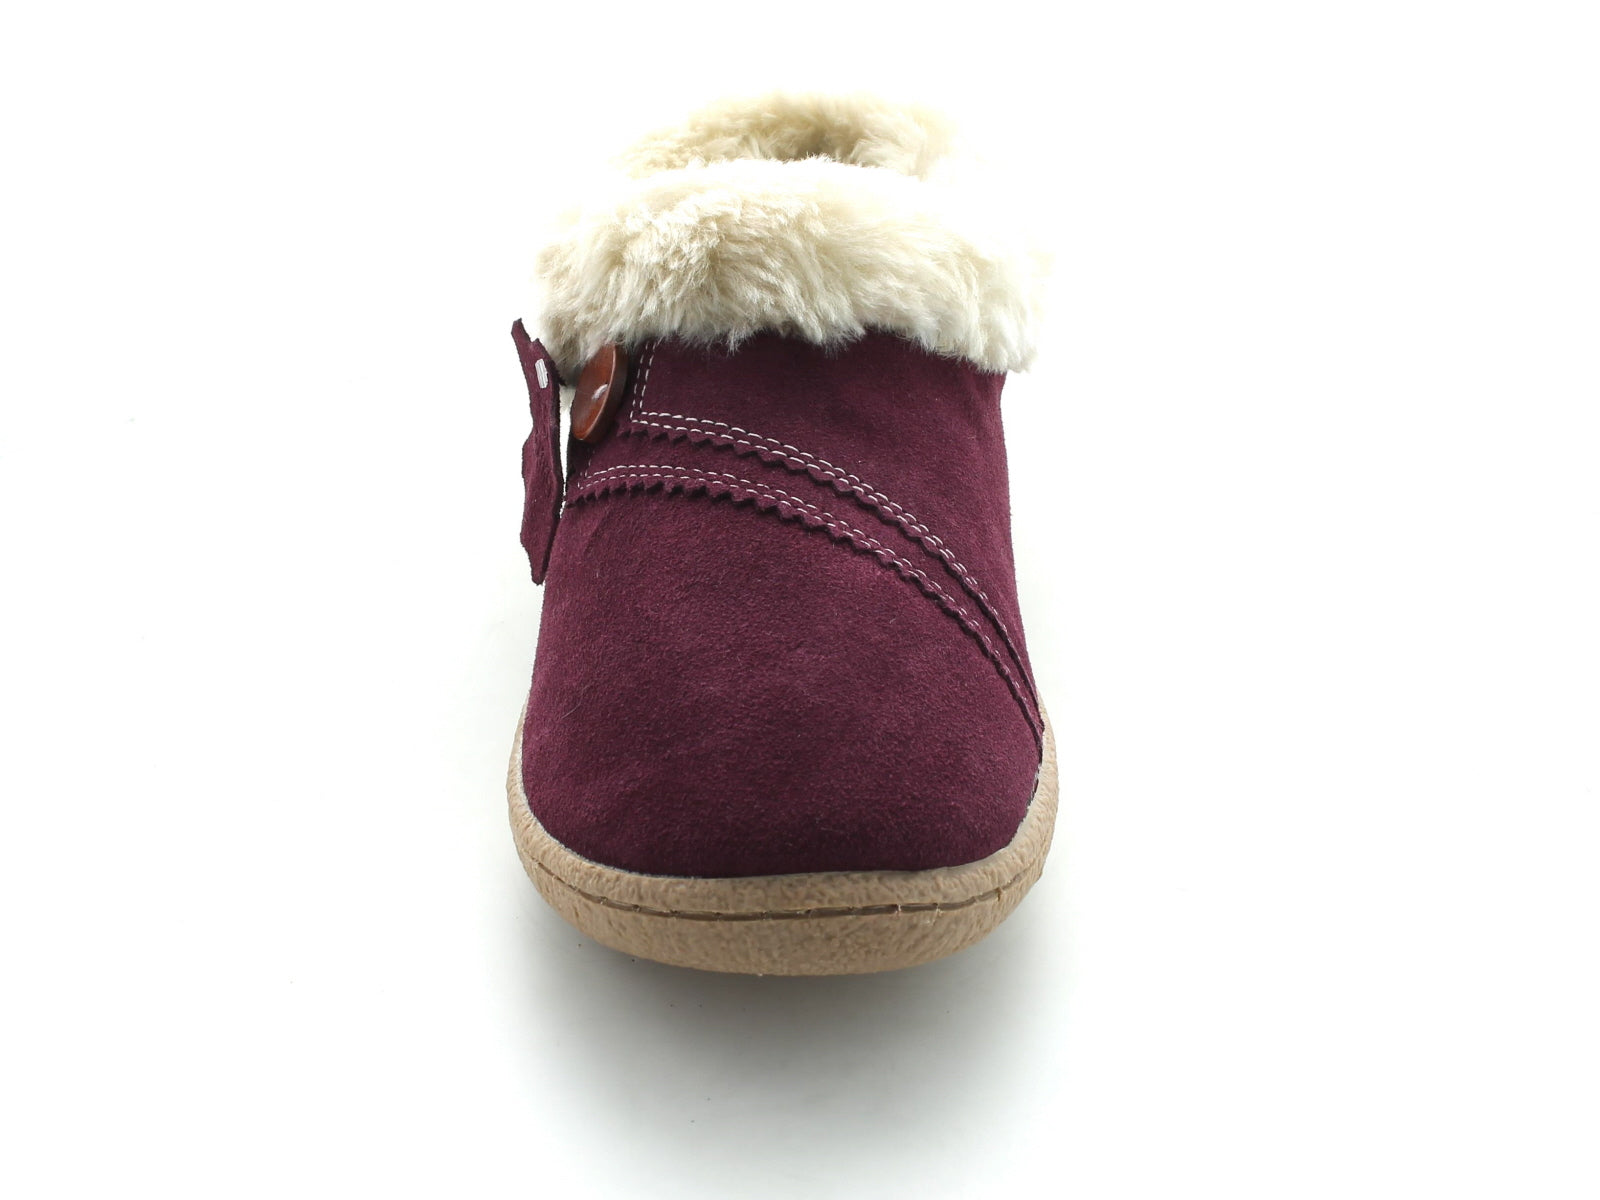 larks Eskimo Snow in Berry Suede front view